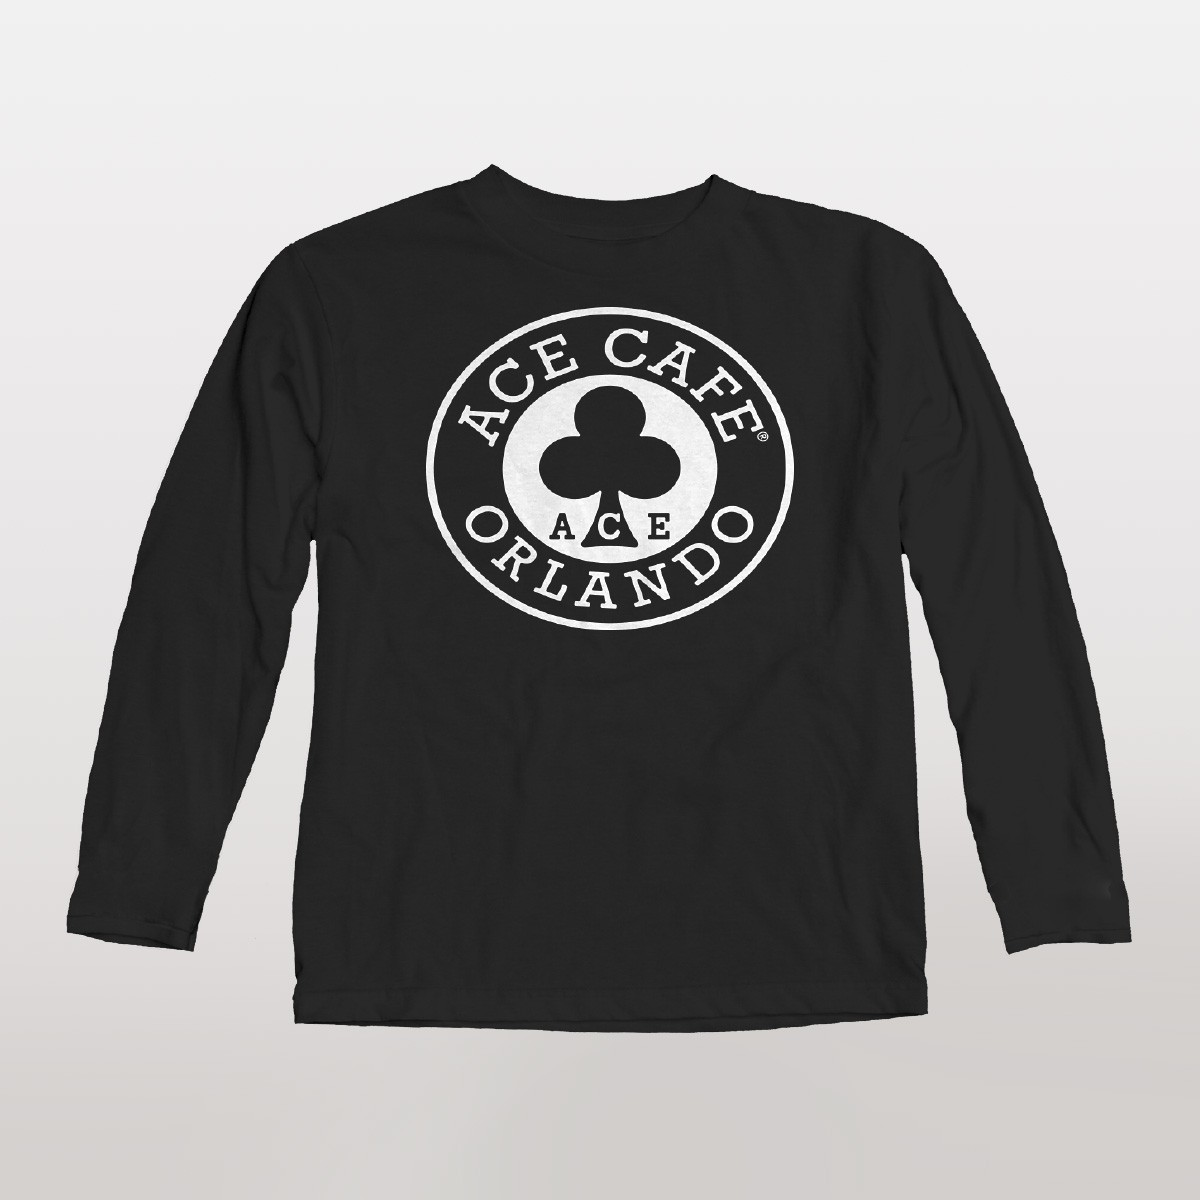 Ace Cafe Orlando Longsleeved Tee